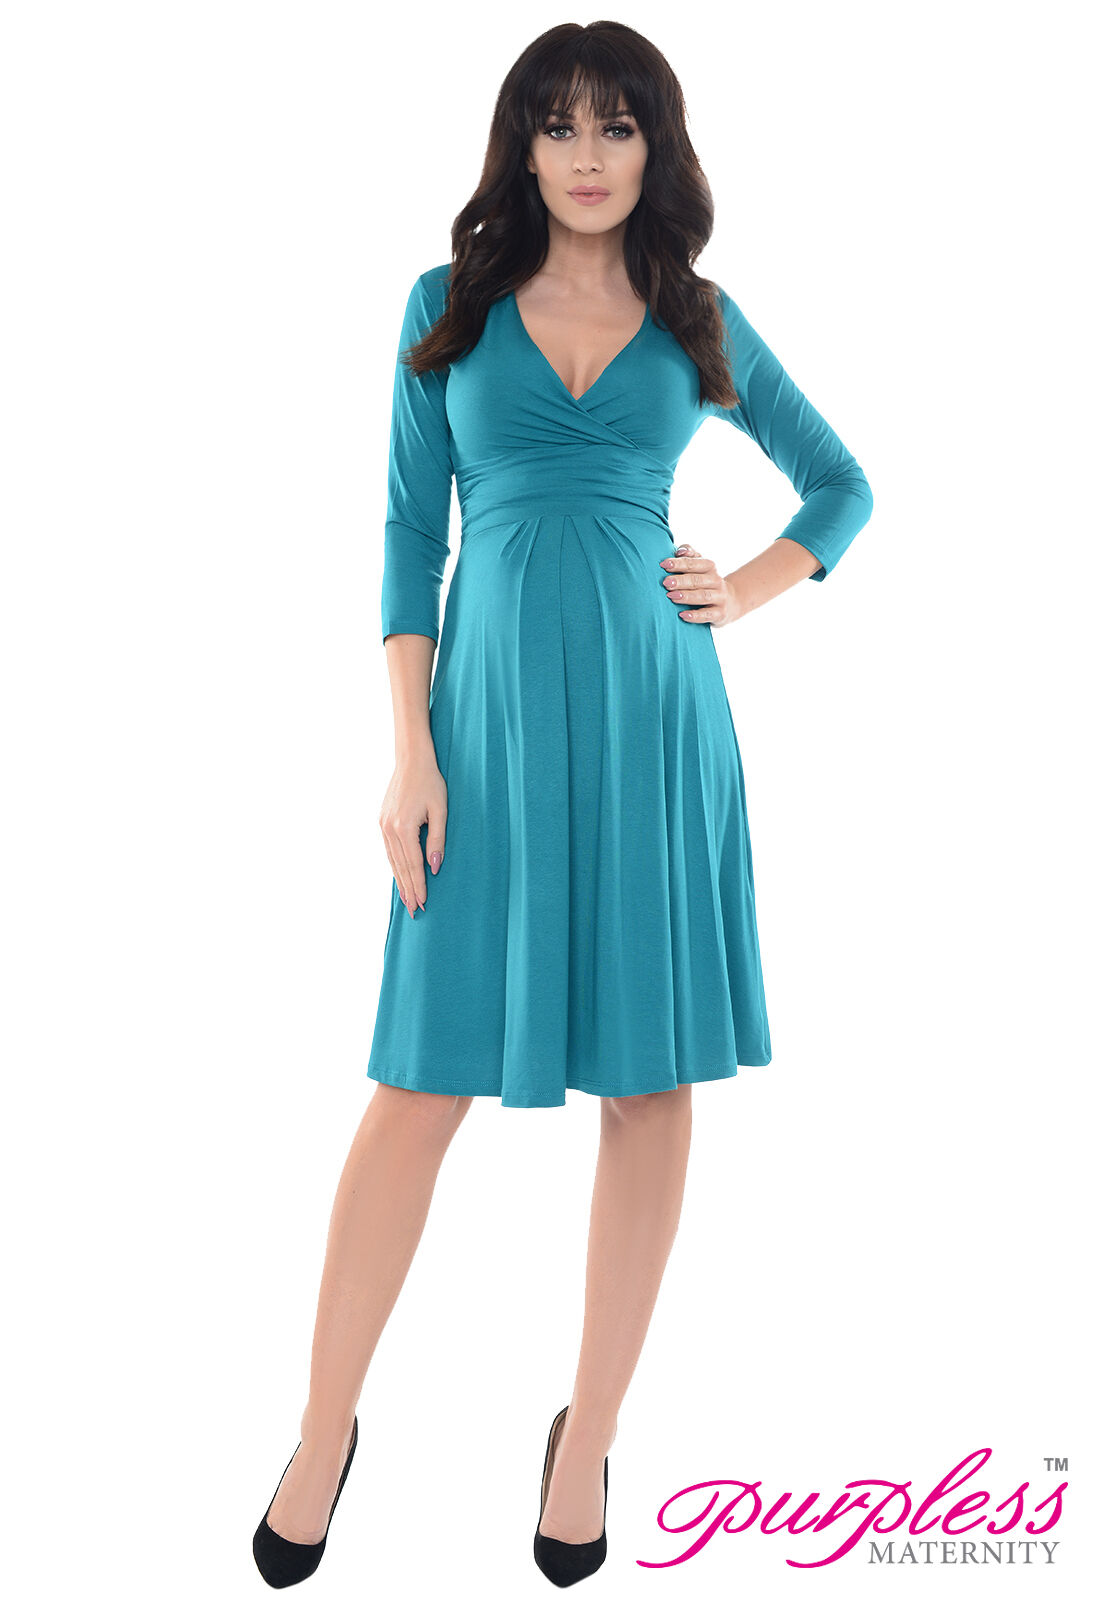 Purpless maternity dress vneck pregnancy clothing size 8 10 12 14 picture 4 of 6 ombrellifo Images